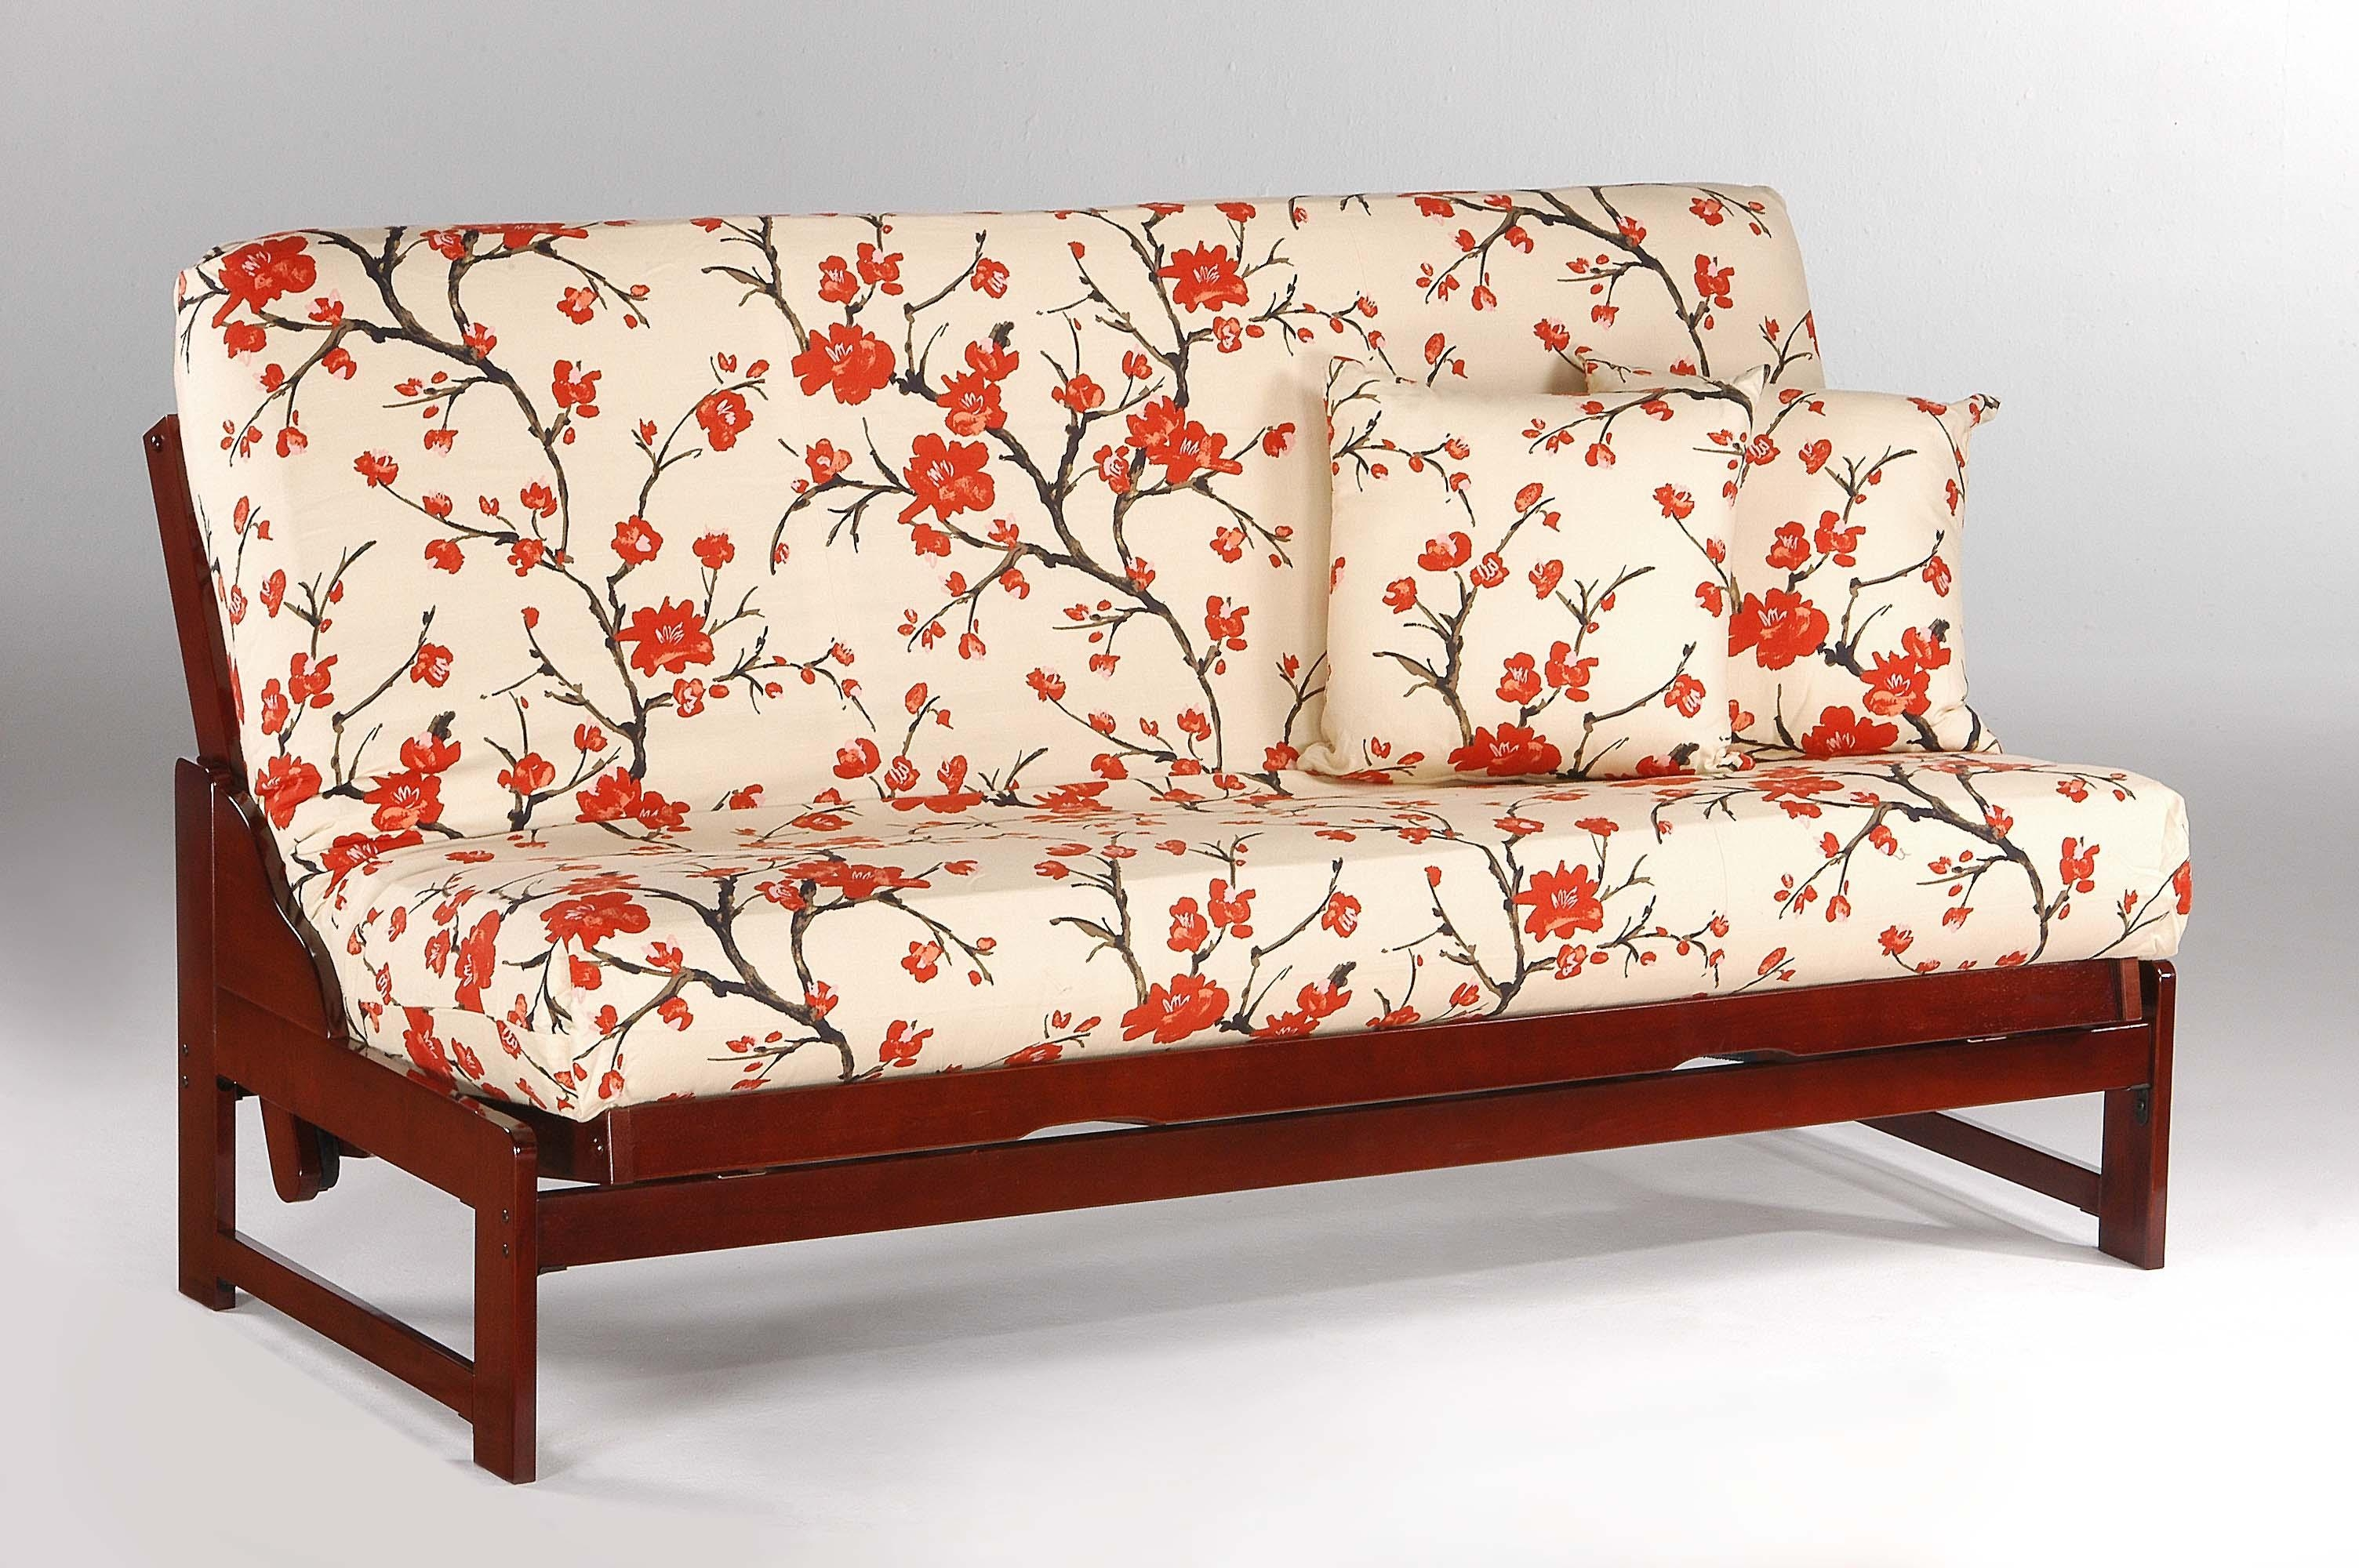 Floral Fabric Double Sofa Bed With Sturdy Metal Frame (View 10 of 20)